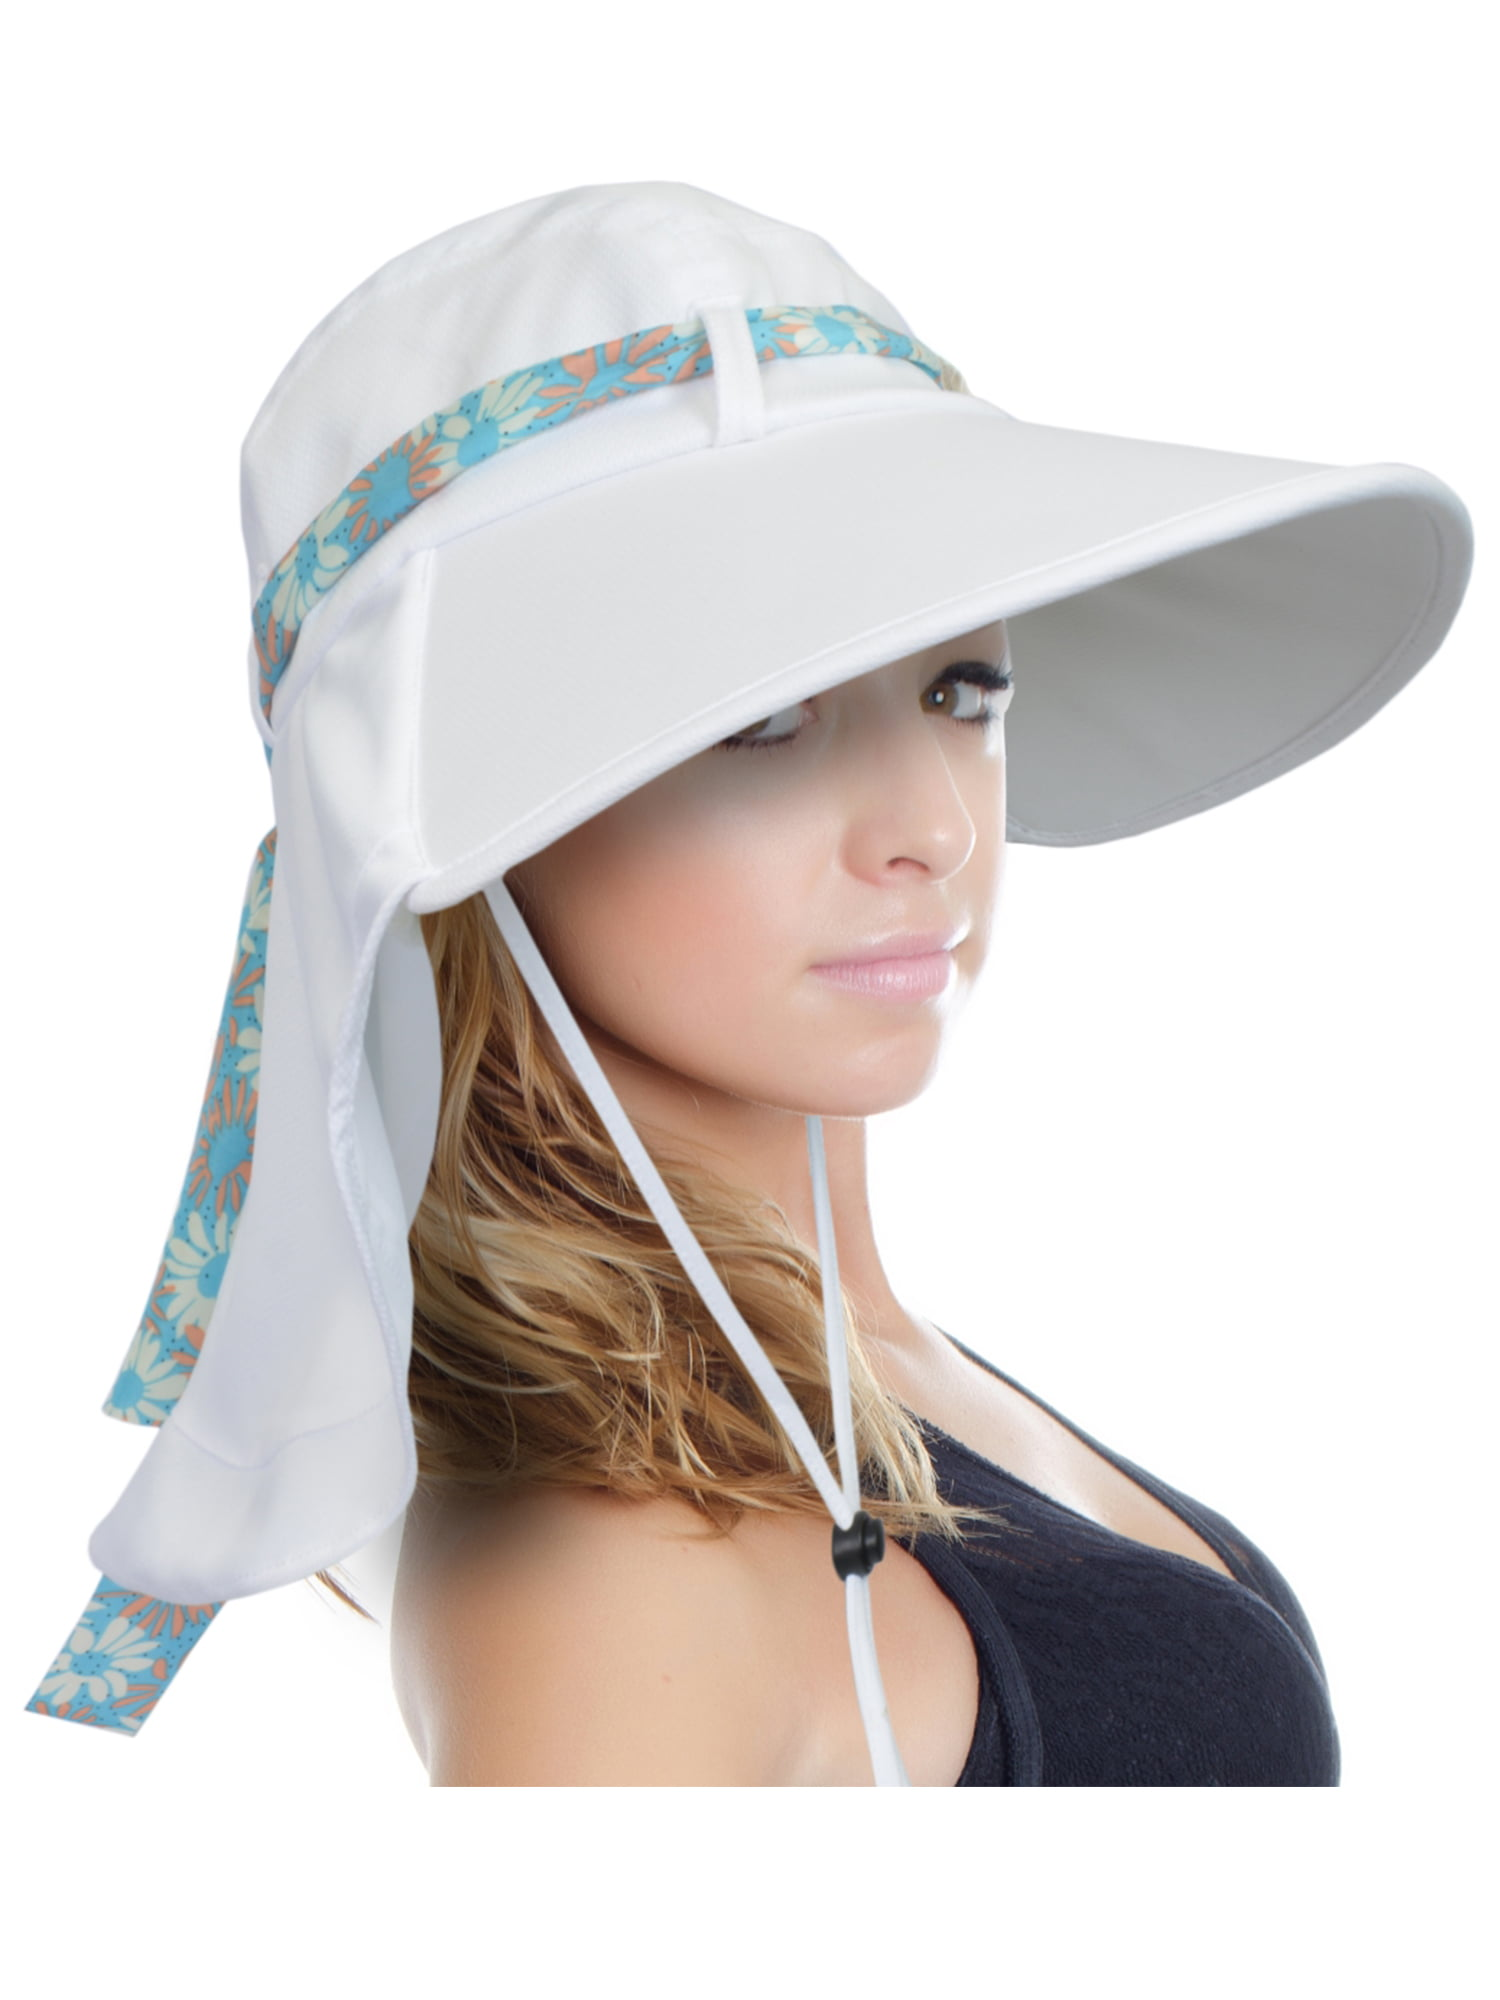 eee27af17 Sun Hat for Women Large Brim UV Sun Protection with Neck Flap Hat for  Outing Fishing, Hiking, Holiday by Sun Blocker